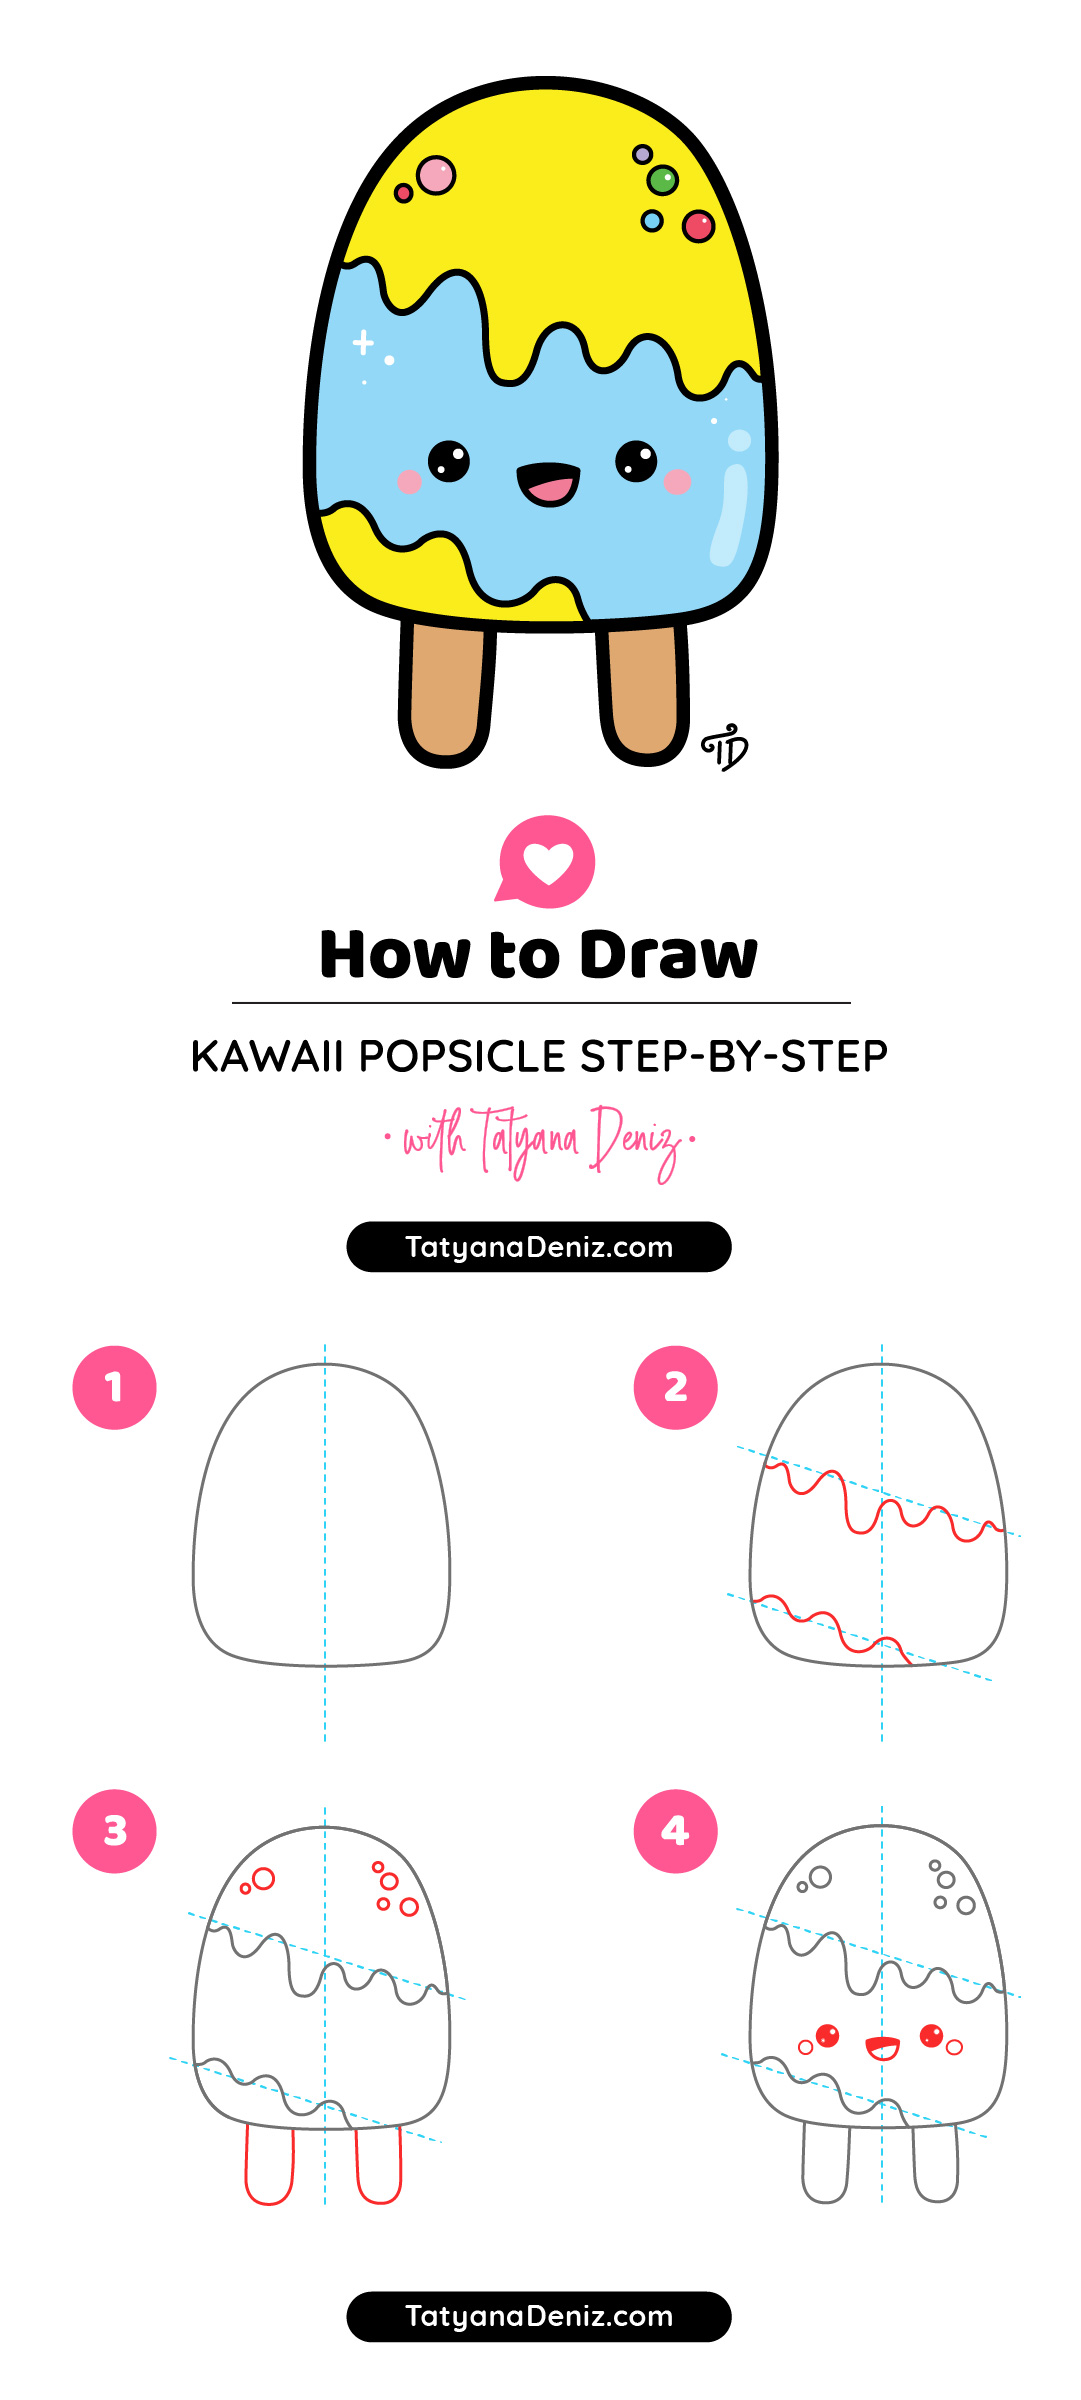 Step-by-step tutorial to draw a cute cartoon popsicle with a face